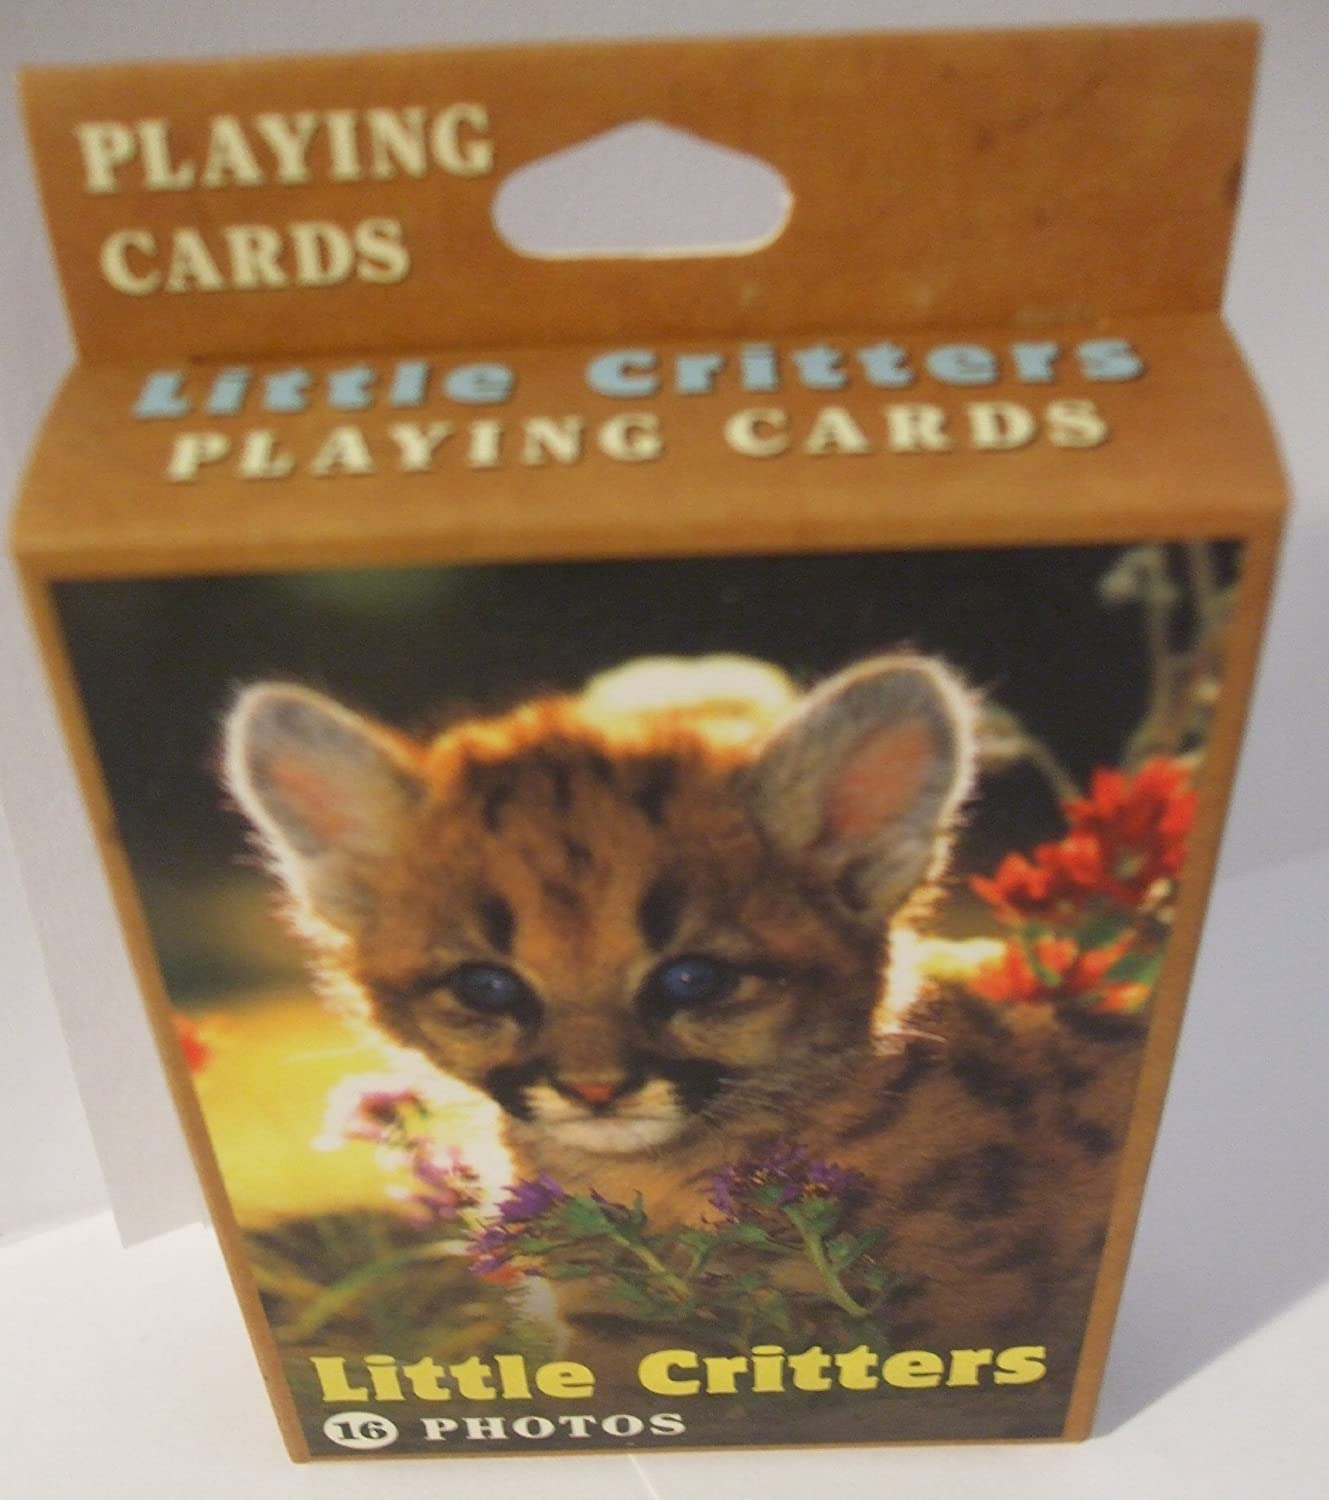 ONE DECK Impact LITTLE CRITTERS PLAYING CARDS 16 DIFFERENT PHOTOS